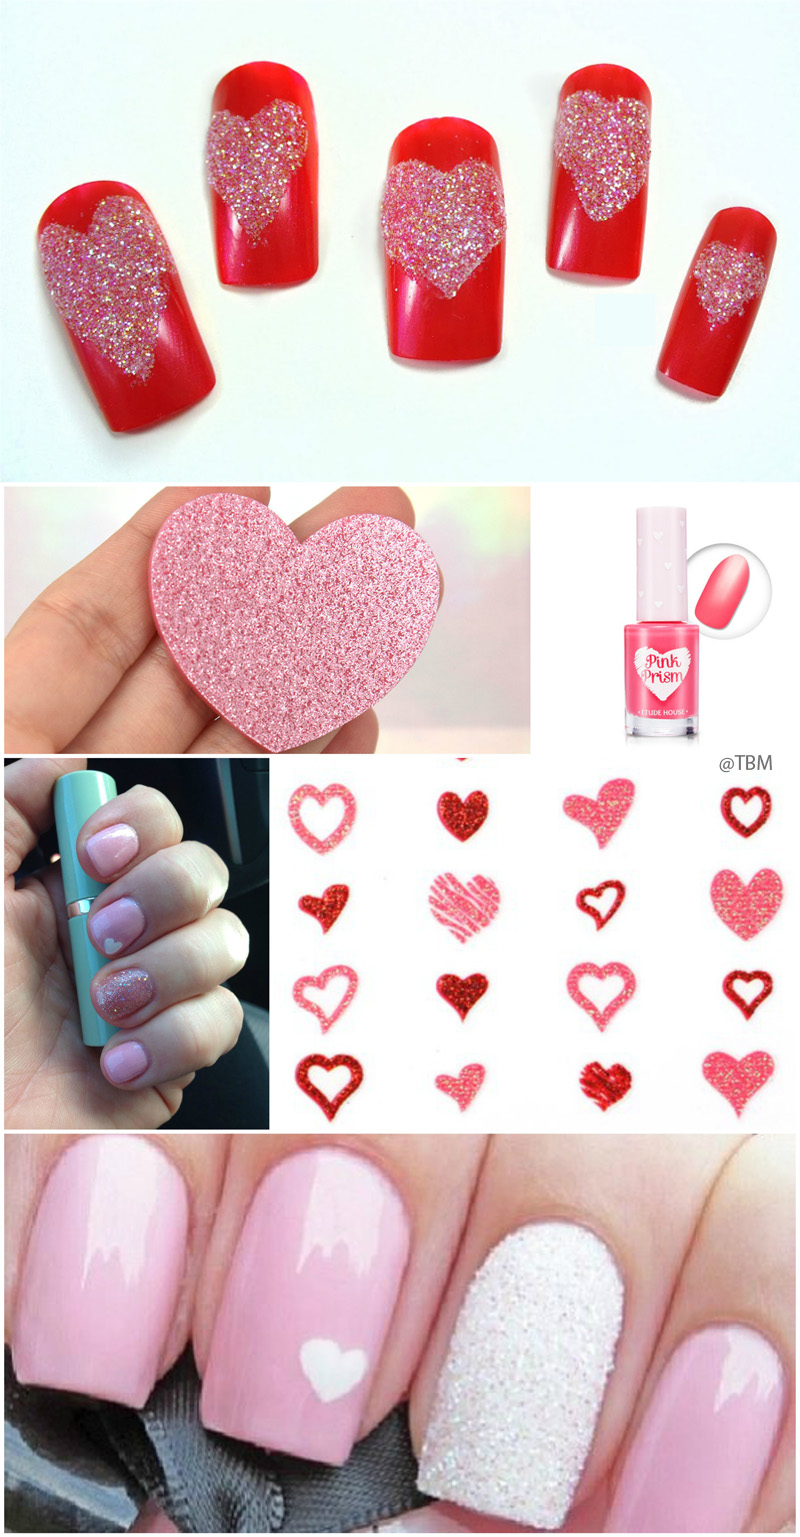 pink-glittery-heart-nails